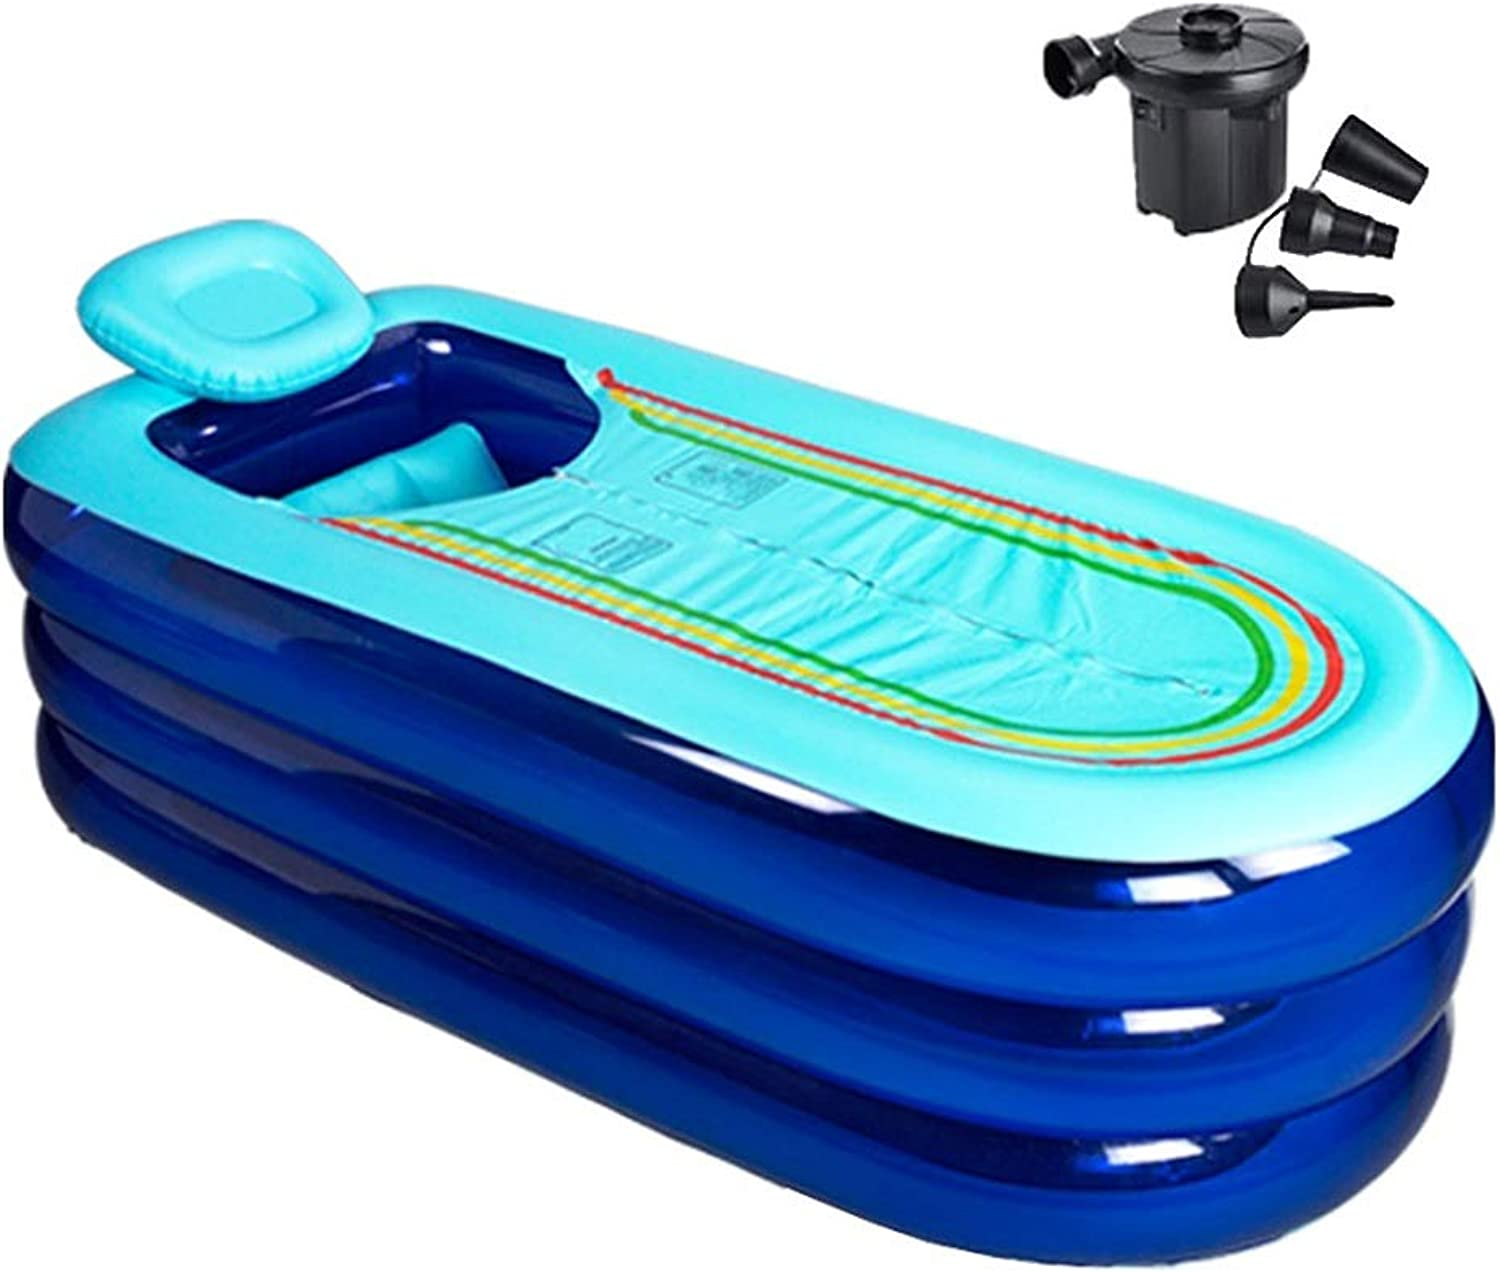 FuManLi Portable Bathtub For Adults Inflatable Plastic Bath Tub With Electric Air Pump, Large For Bathroom SPA, 66x31x18inch (color   bluee)